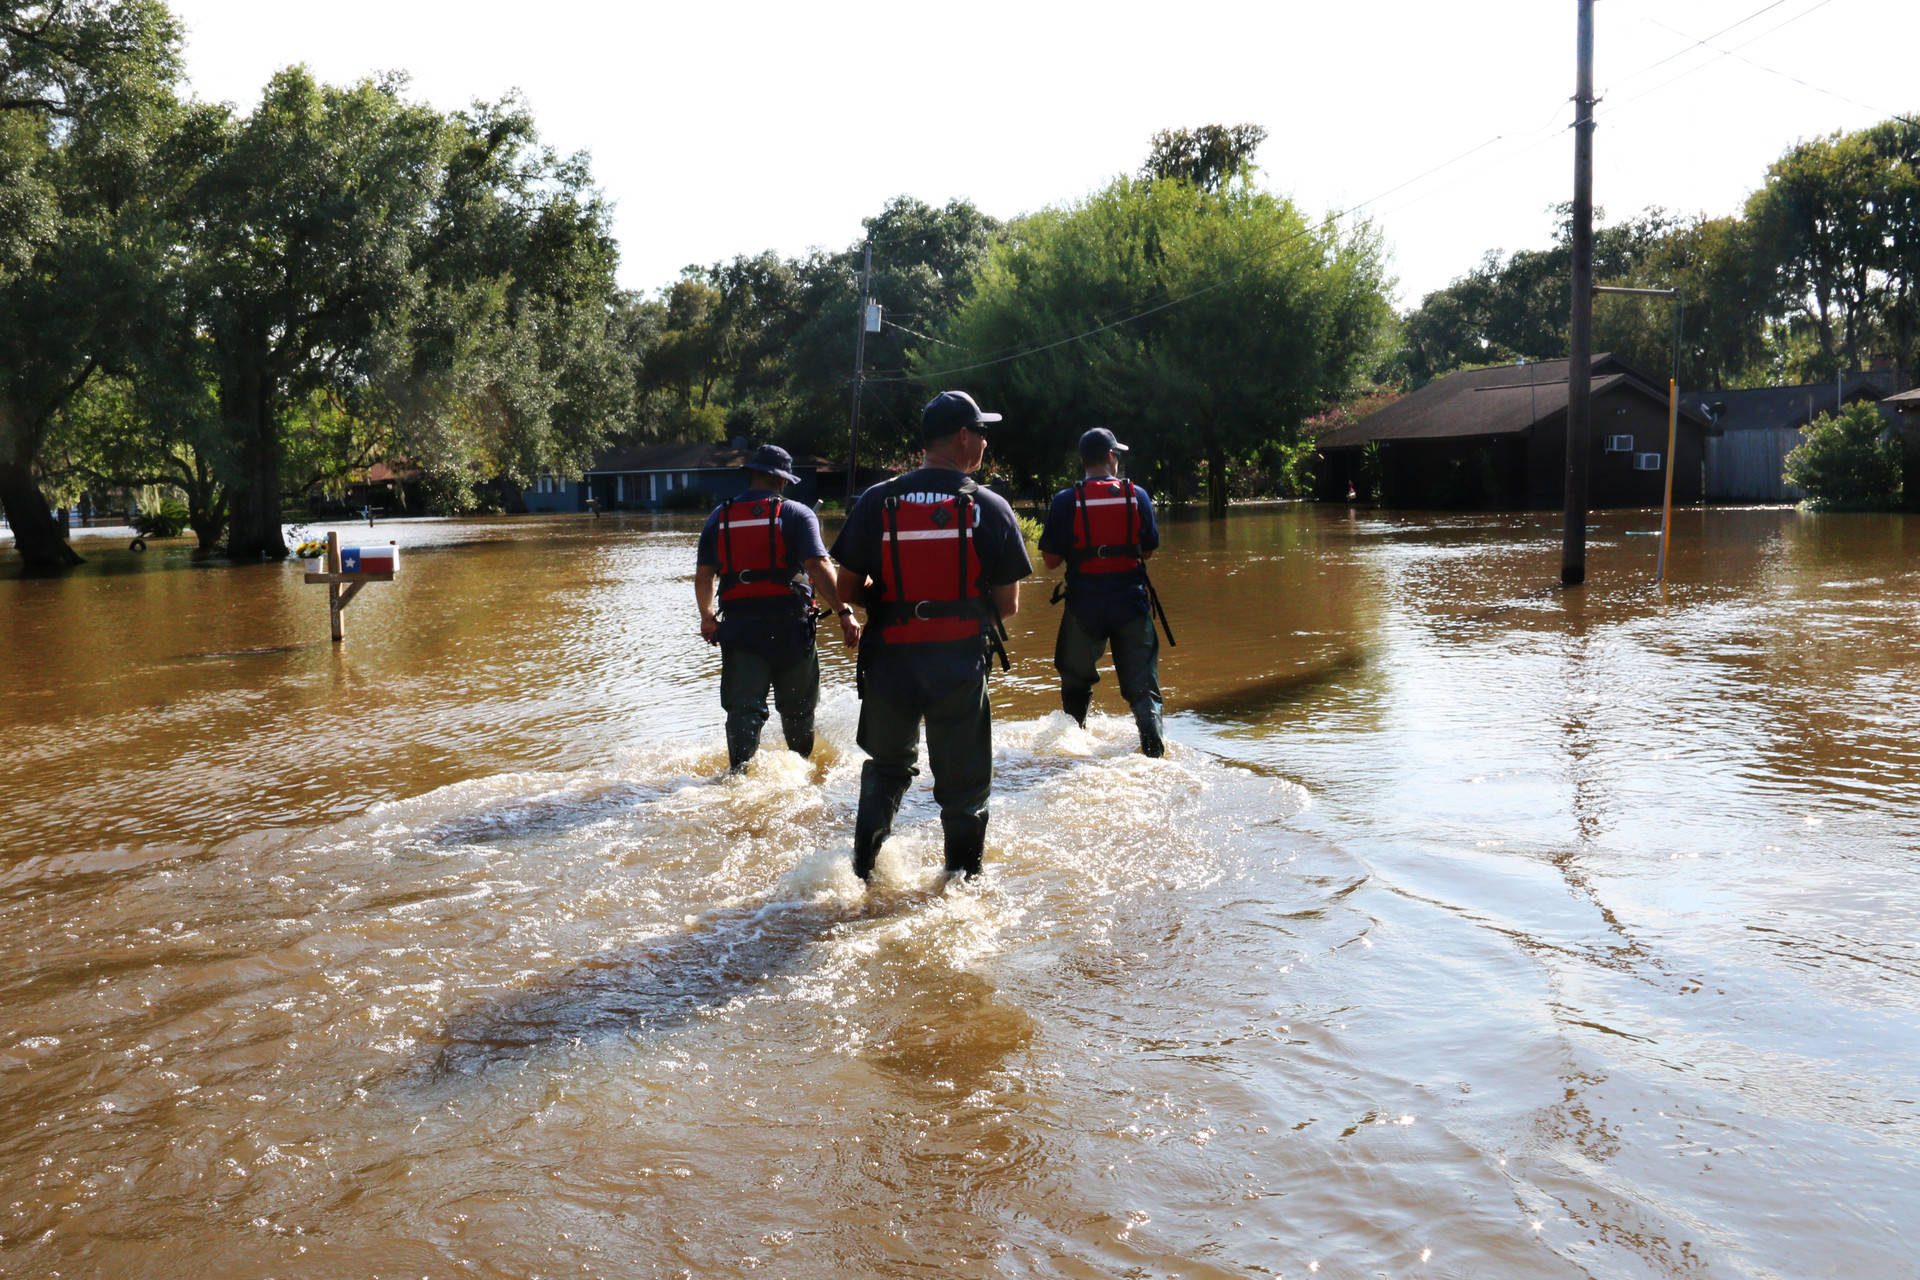 (From Left) Scott Lewis, Mike Wolfe and Dave Lauchner, members of Urban Search and Rescue California Task Force 7 and the Sacramento Fire Department, walk through Richwood, Texas, on Sept. 3, 2017. Richwood is one of many rural communities that continue to see major flooding over a week after Hurricane Harvey hit Texas.